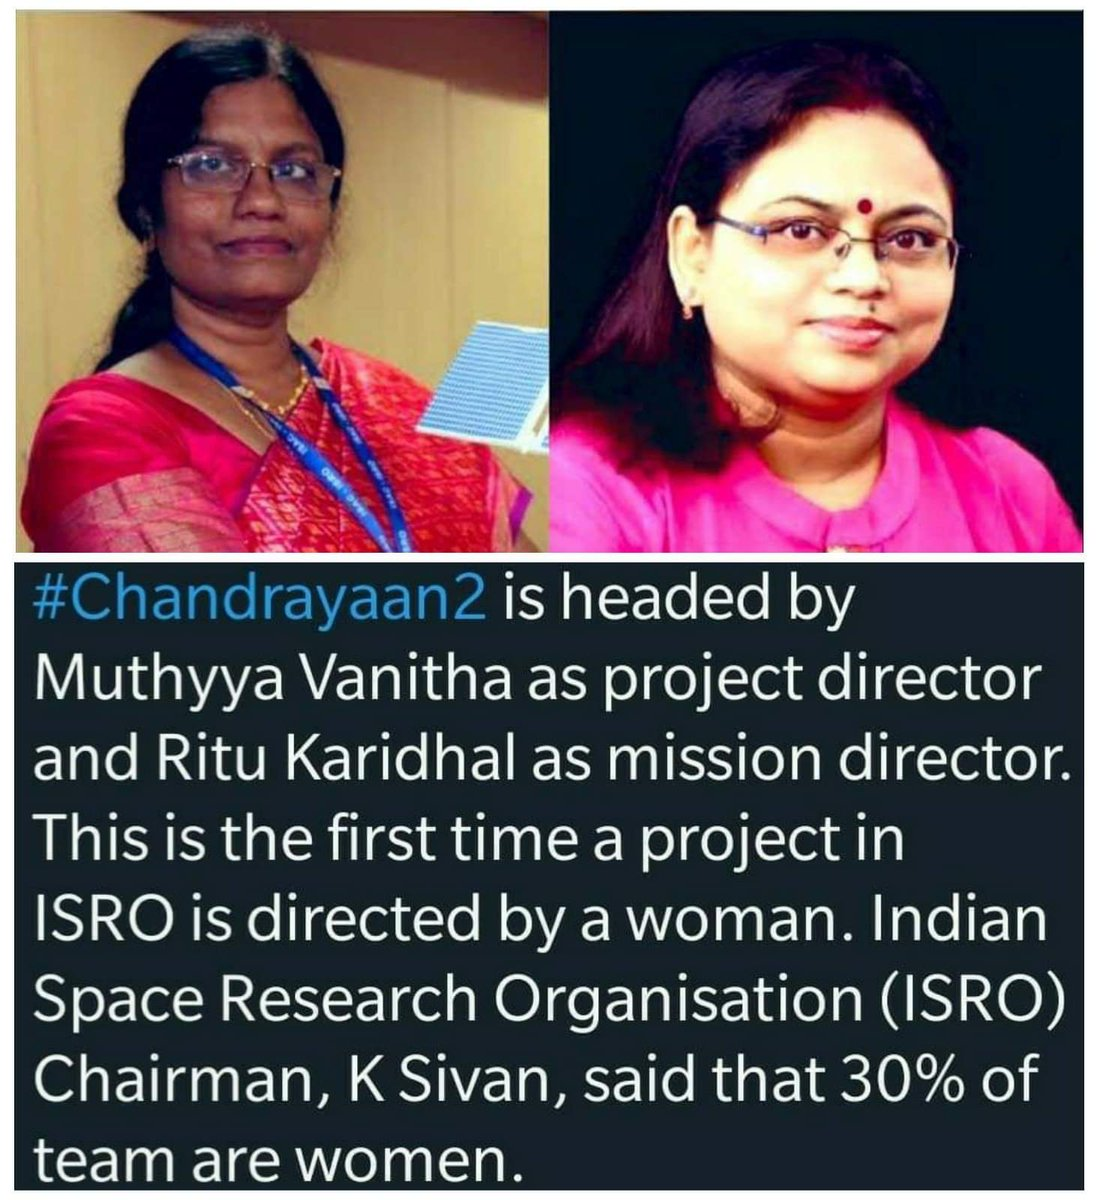 #ISRO #CHANDRAYAAN2  Project Director: #VanithaMutthayya  Mission Director: #RituKaridhal  🇮🇳 ON THE MOON ⚪  #WOMENEMPOWERMENT 🙏